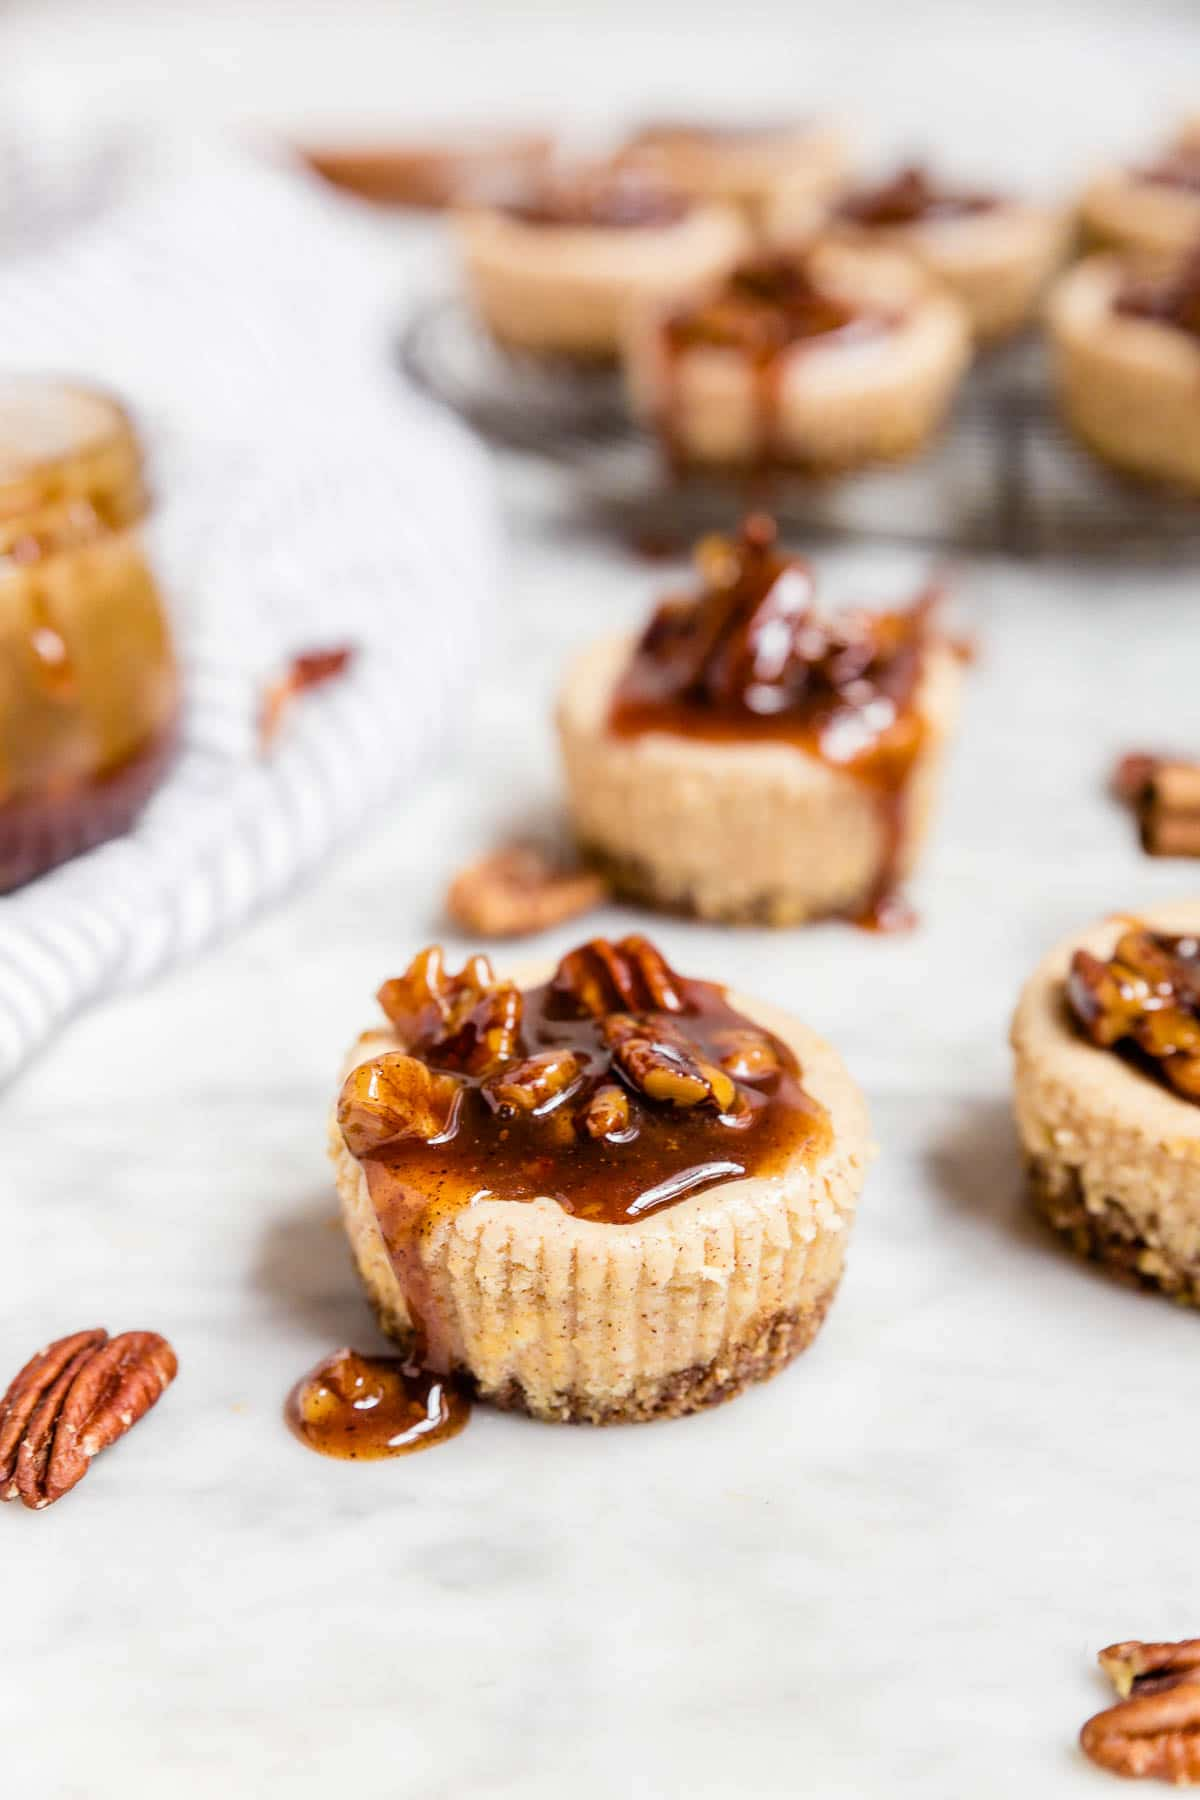 A mini pecan pie cheesecake with decadent caramel sauce with toasted pecans on top.